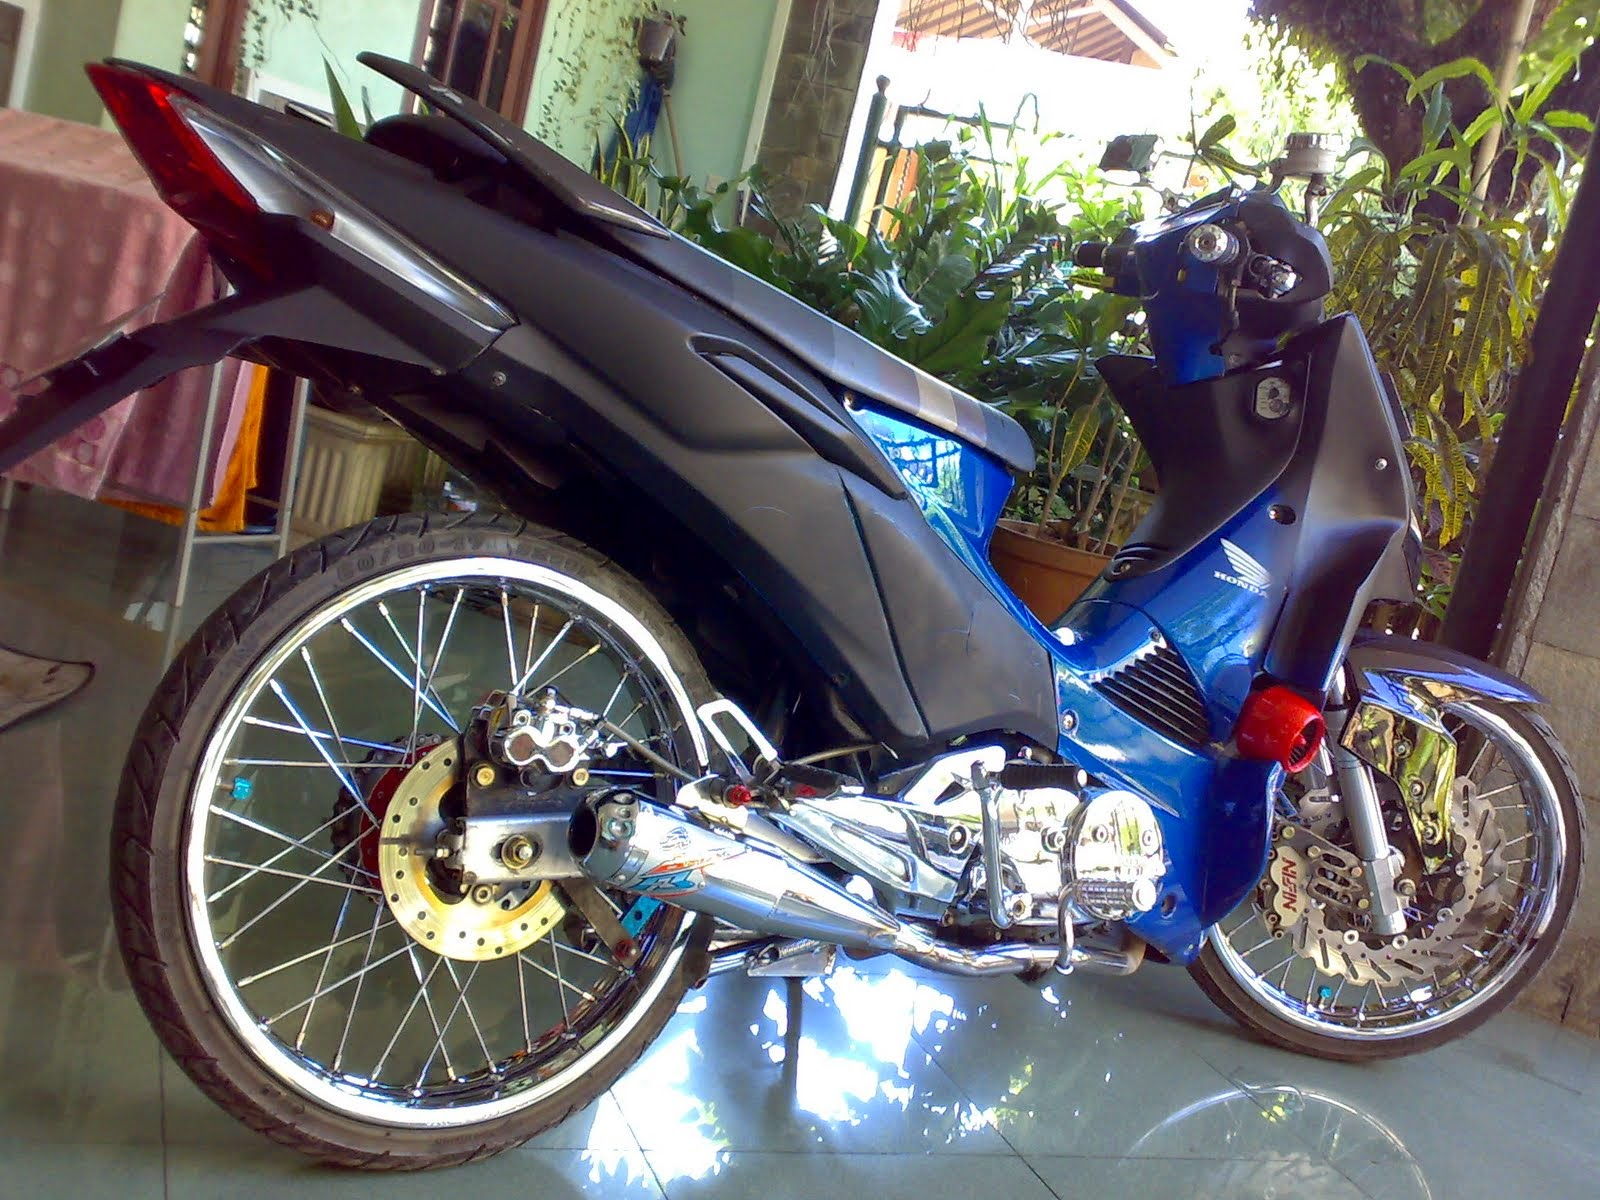 Modifikasi Supra X 125 Fi Road Race Racing Thailook Airbrush Ban